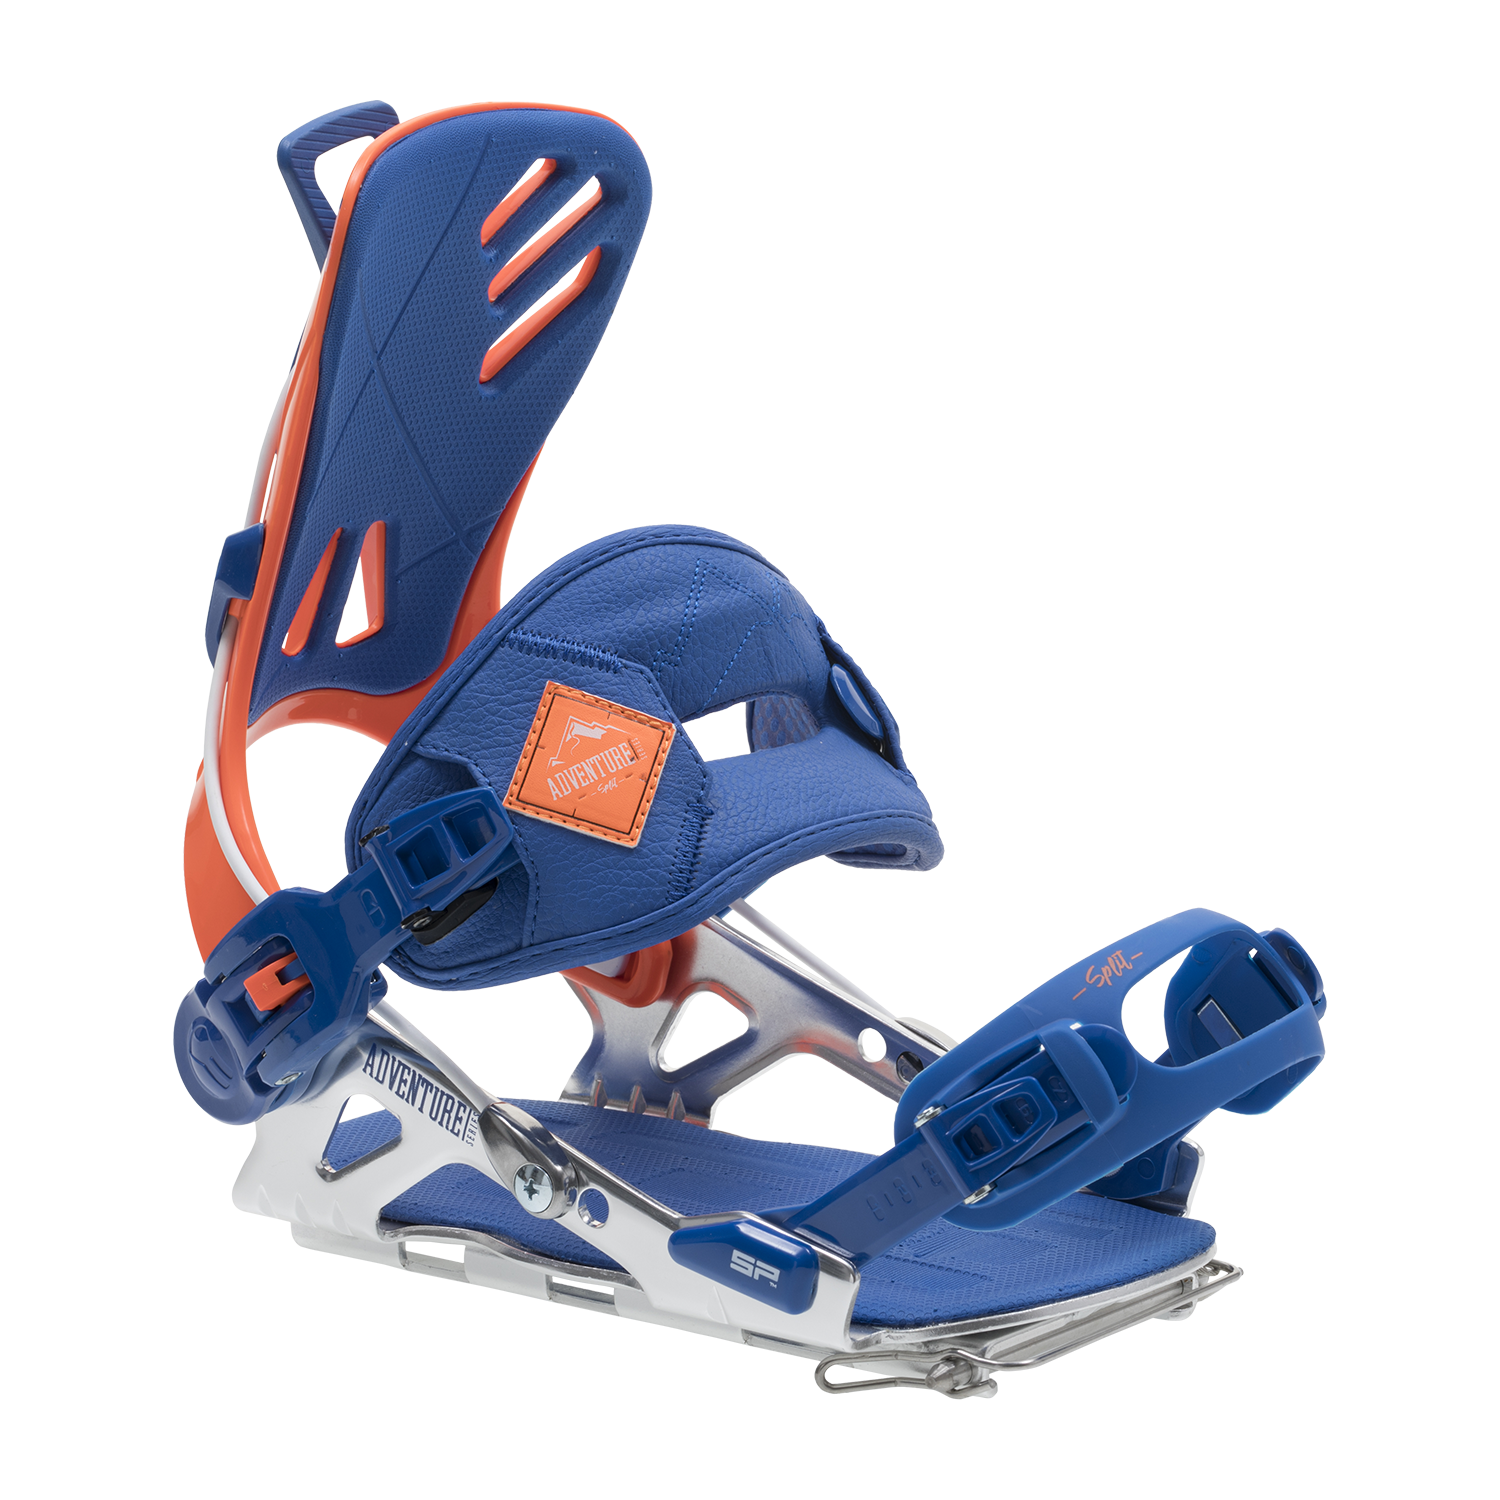 SP FT Split 18/19 Snowboard Binding Shown In Orange